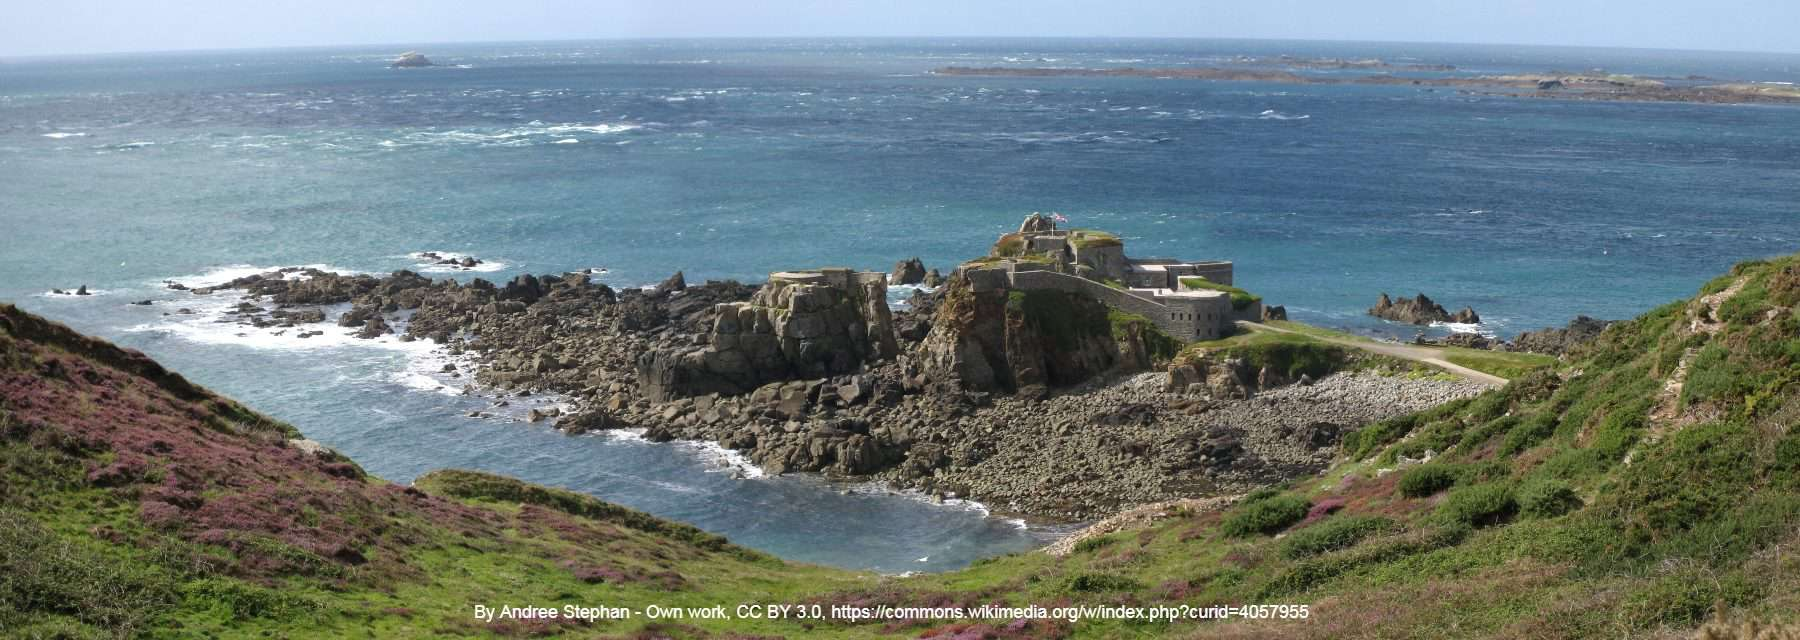 Alderney Fort Clonque credited in photo